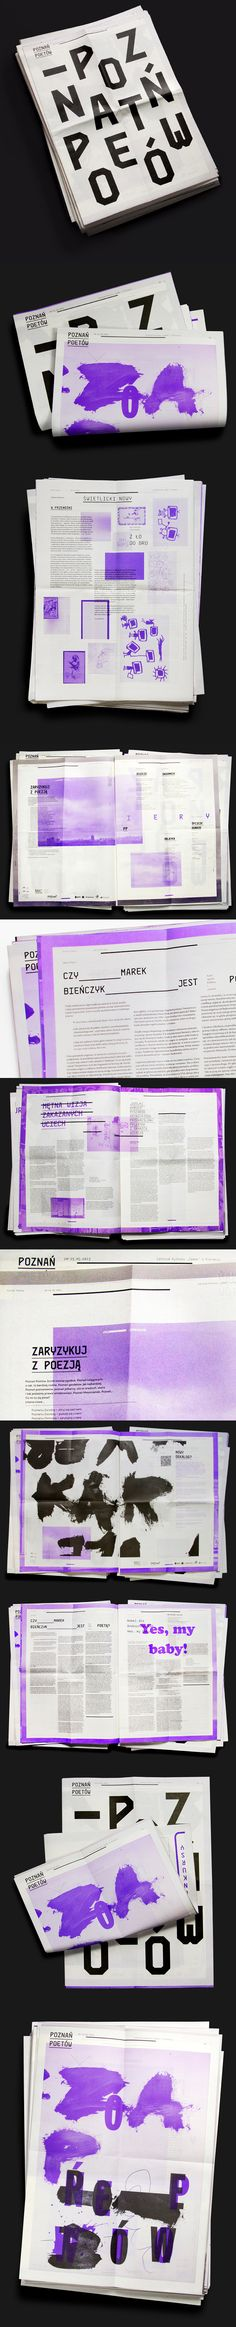 Poets' Poznan – Newspaper